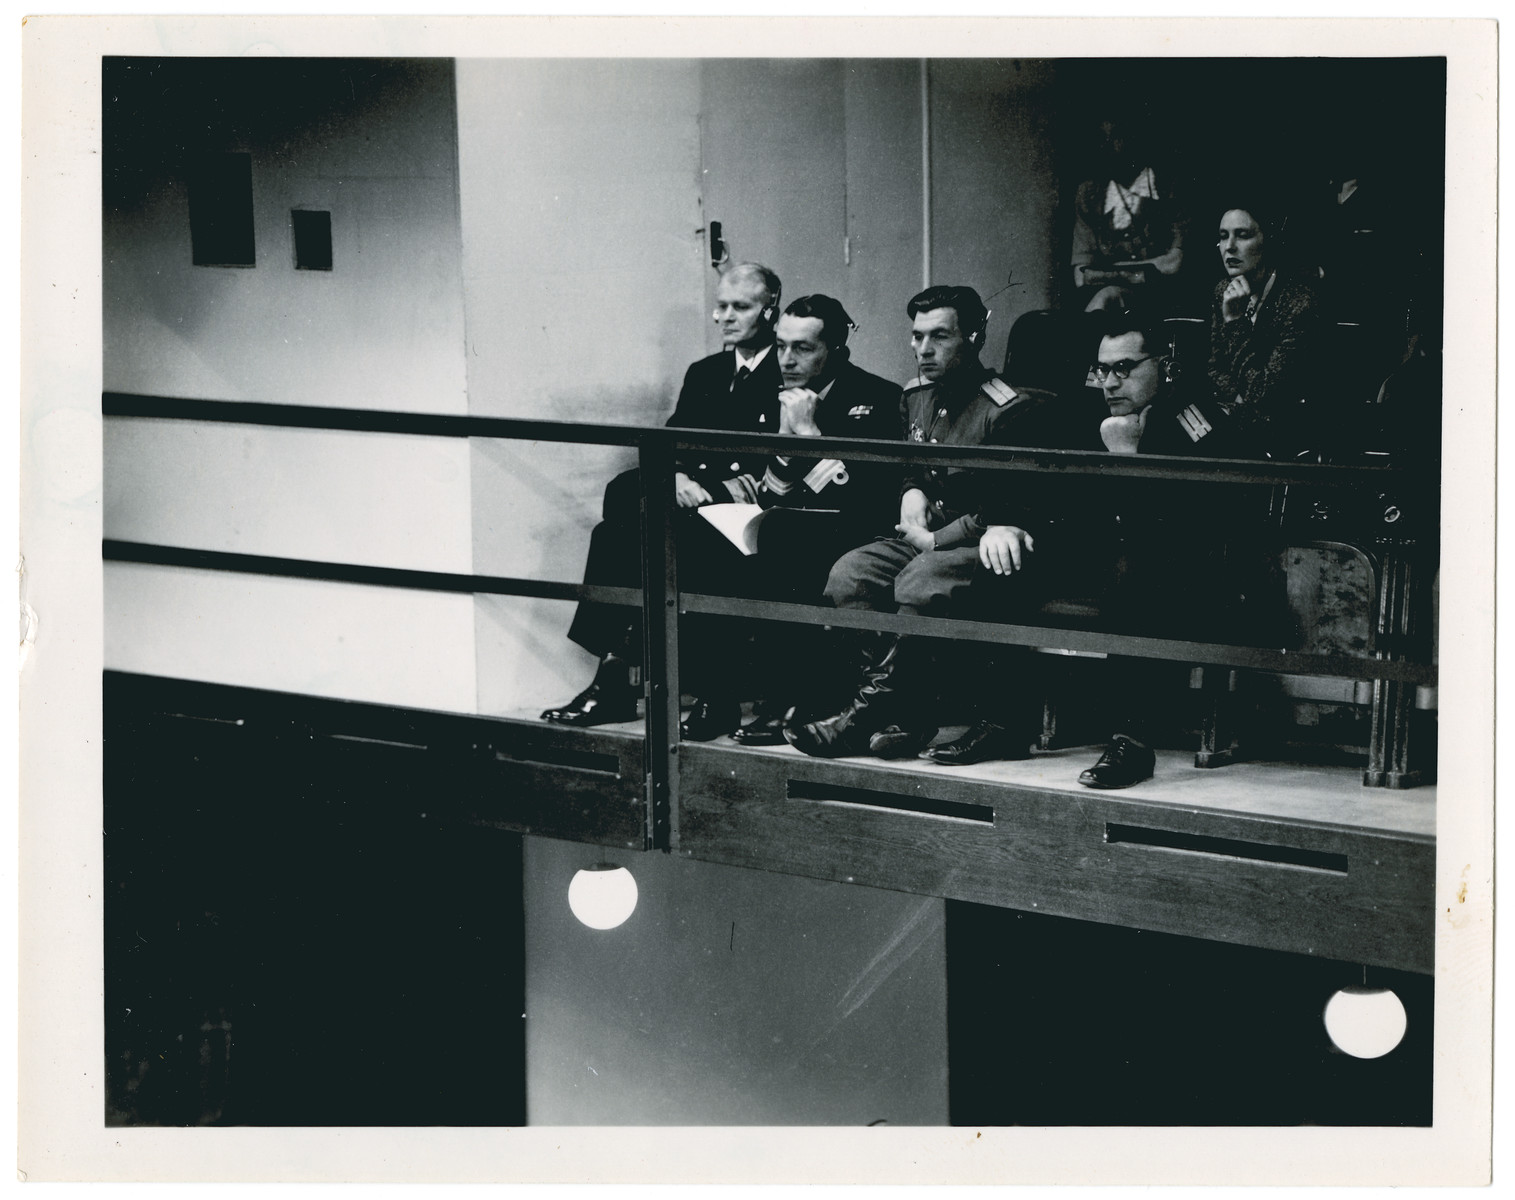 Military observers follow the proceedings of the International Military Tribunal in Nuremberg.